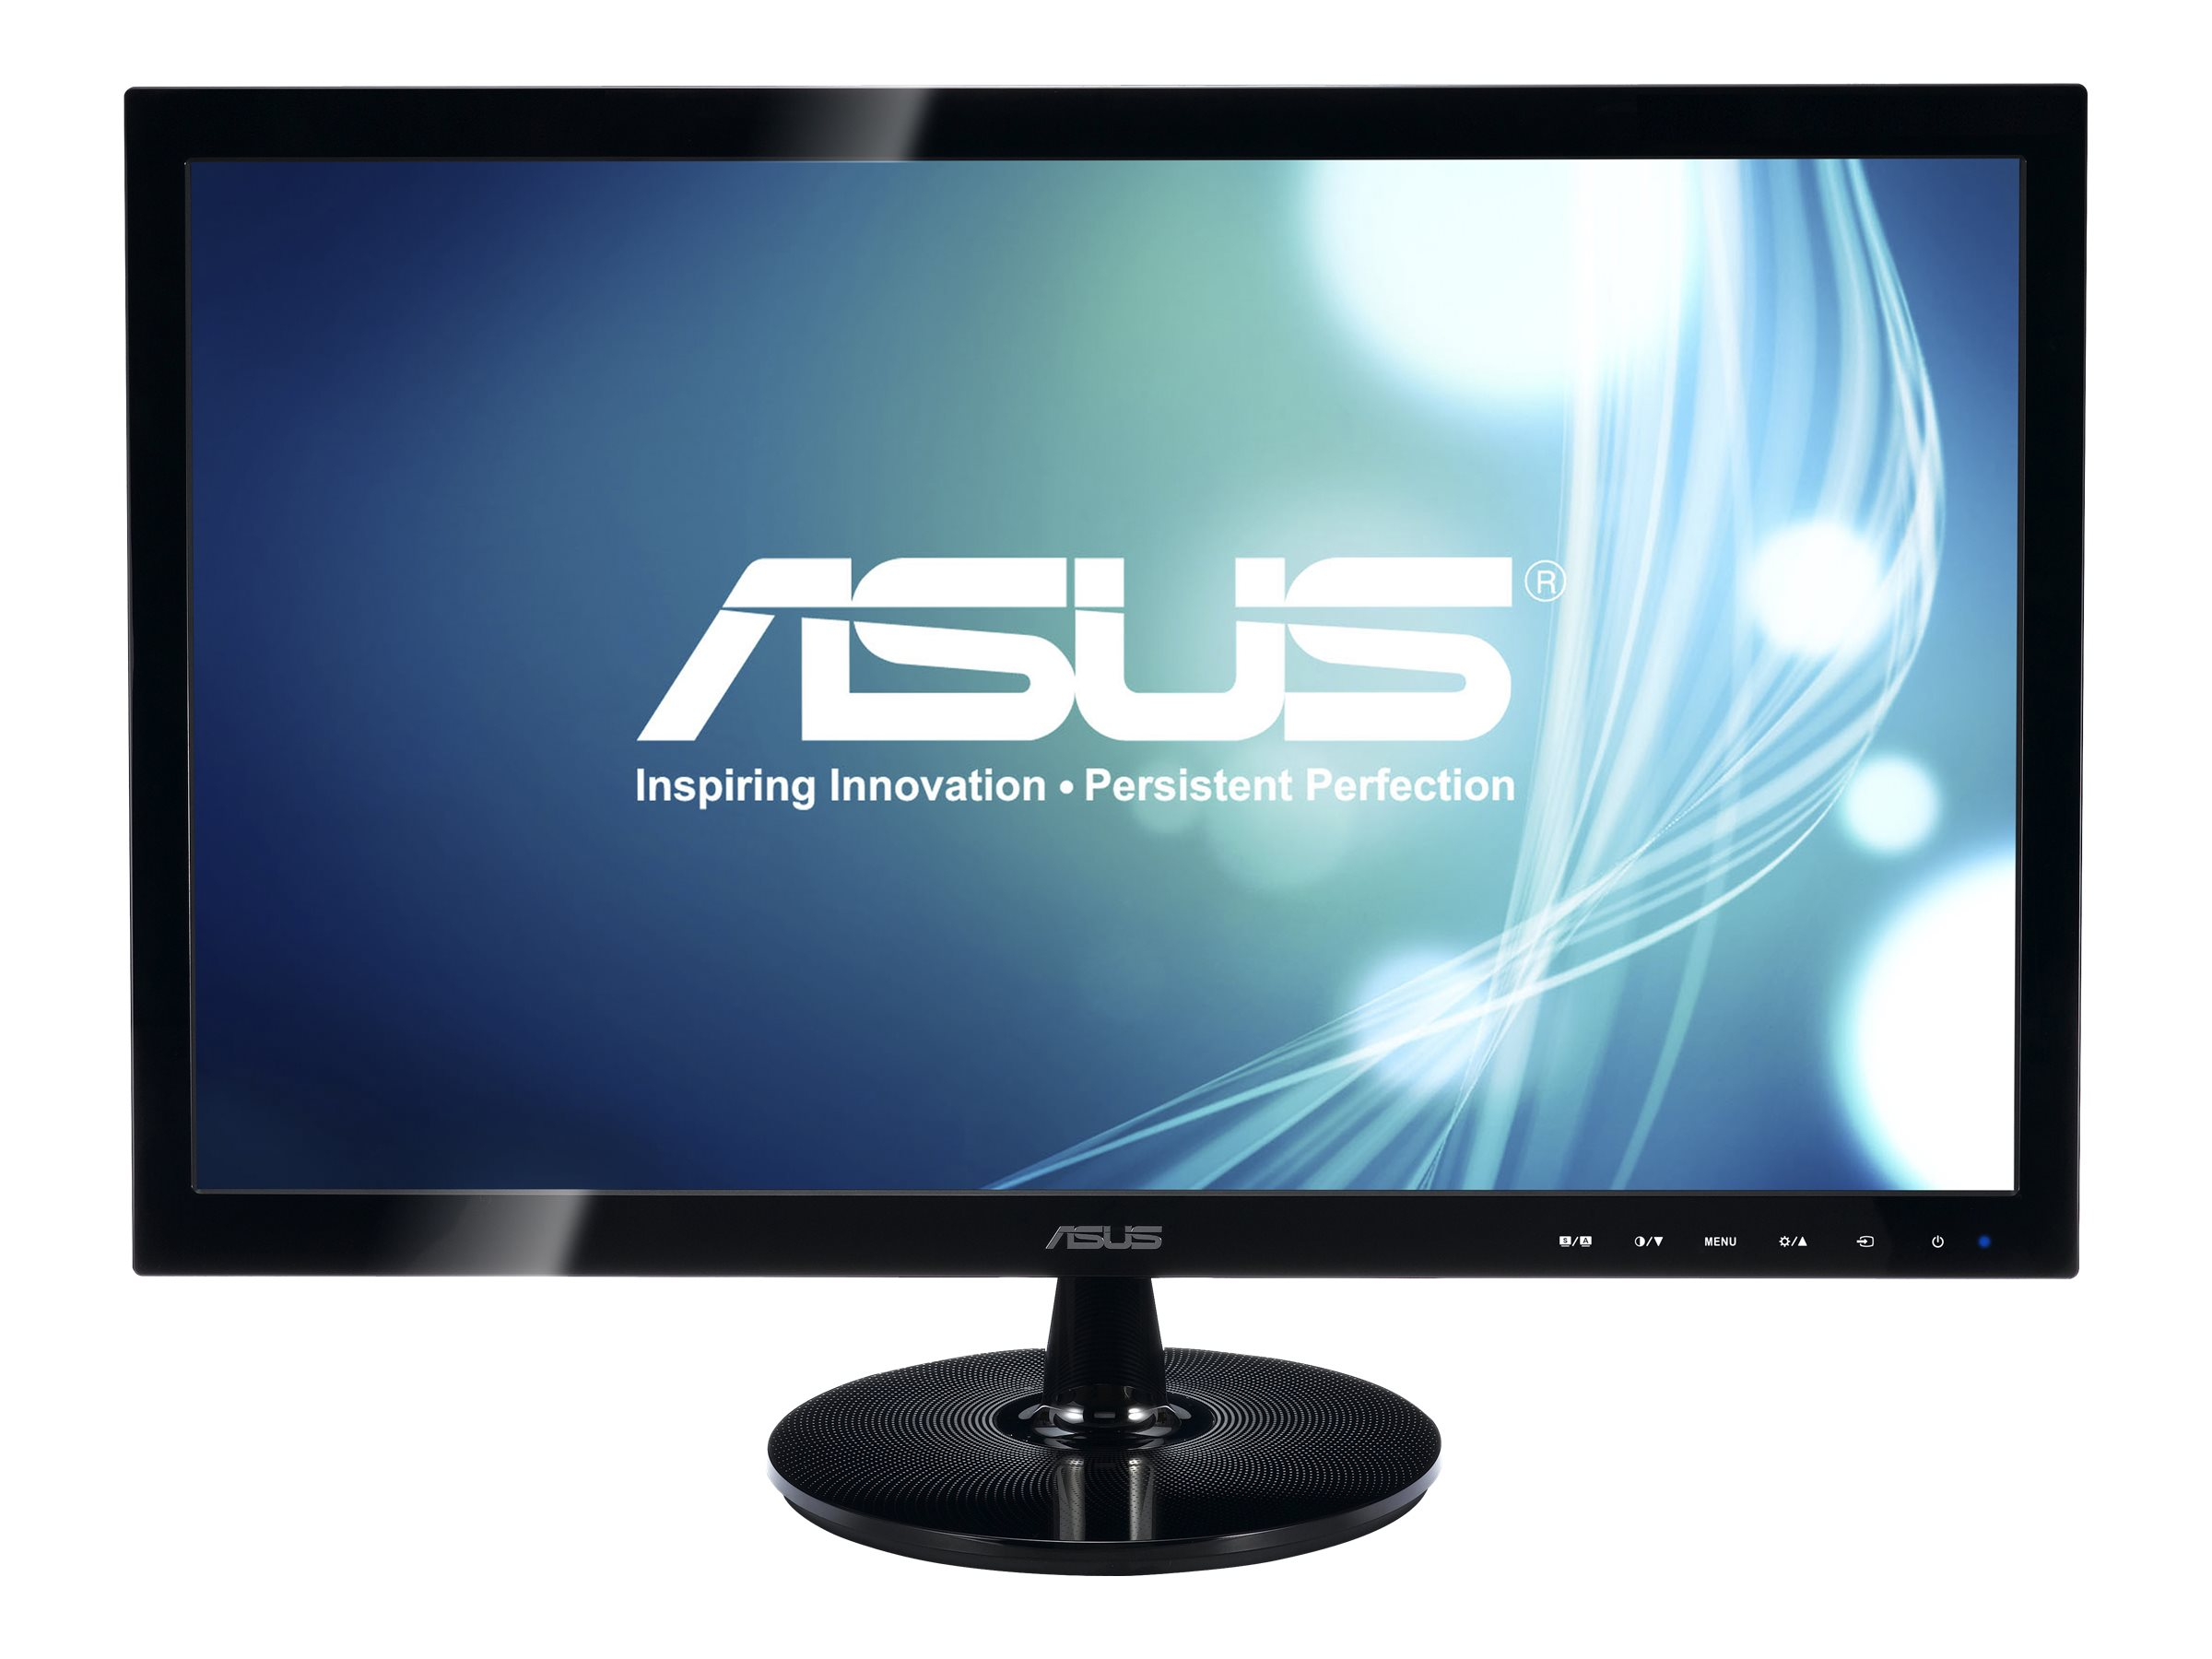 Asus 23 VS238H-P Full HD LED Monitor, Black, VS238H-P, 13030874, Monitors - LED-LCD